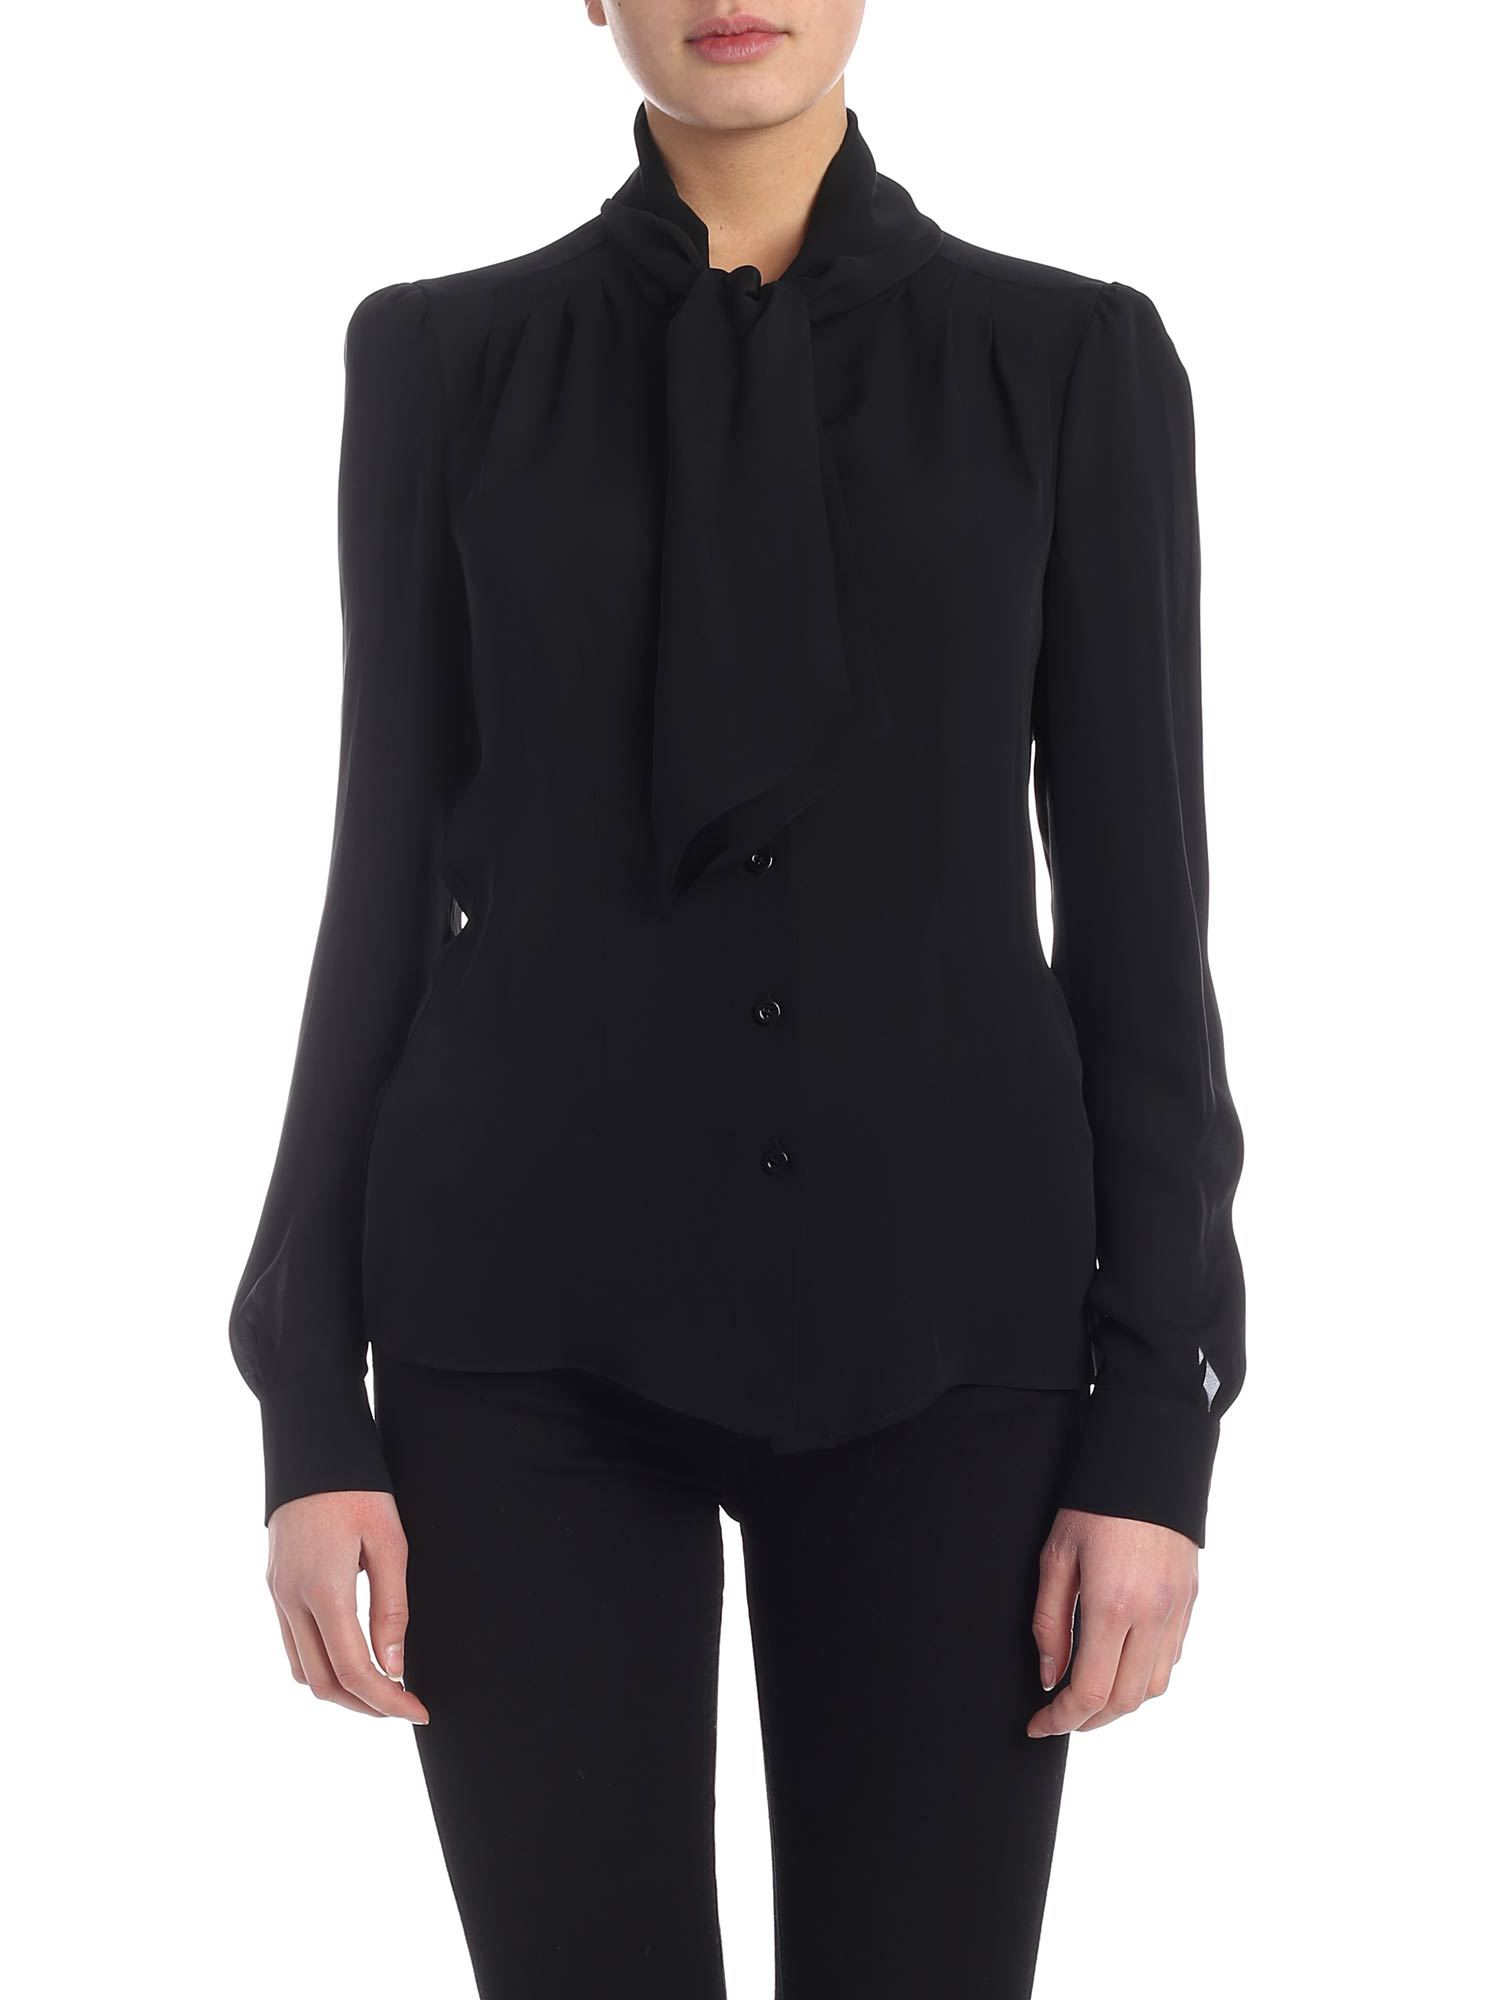 Moschino Lavalliere Shirt In Black Crepe De Chine